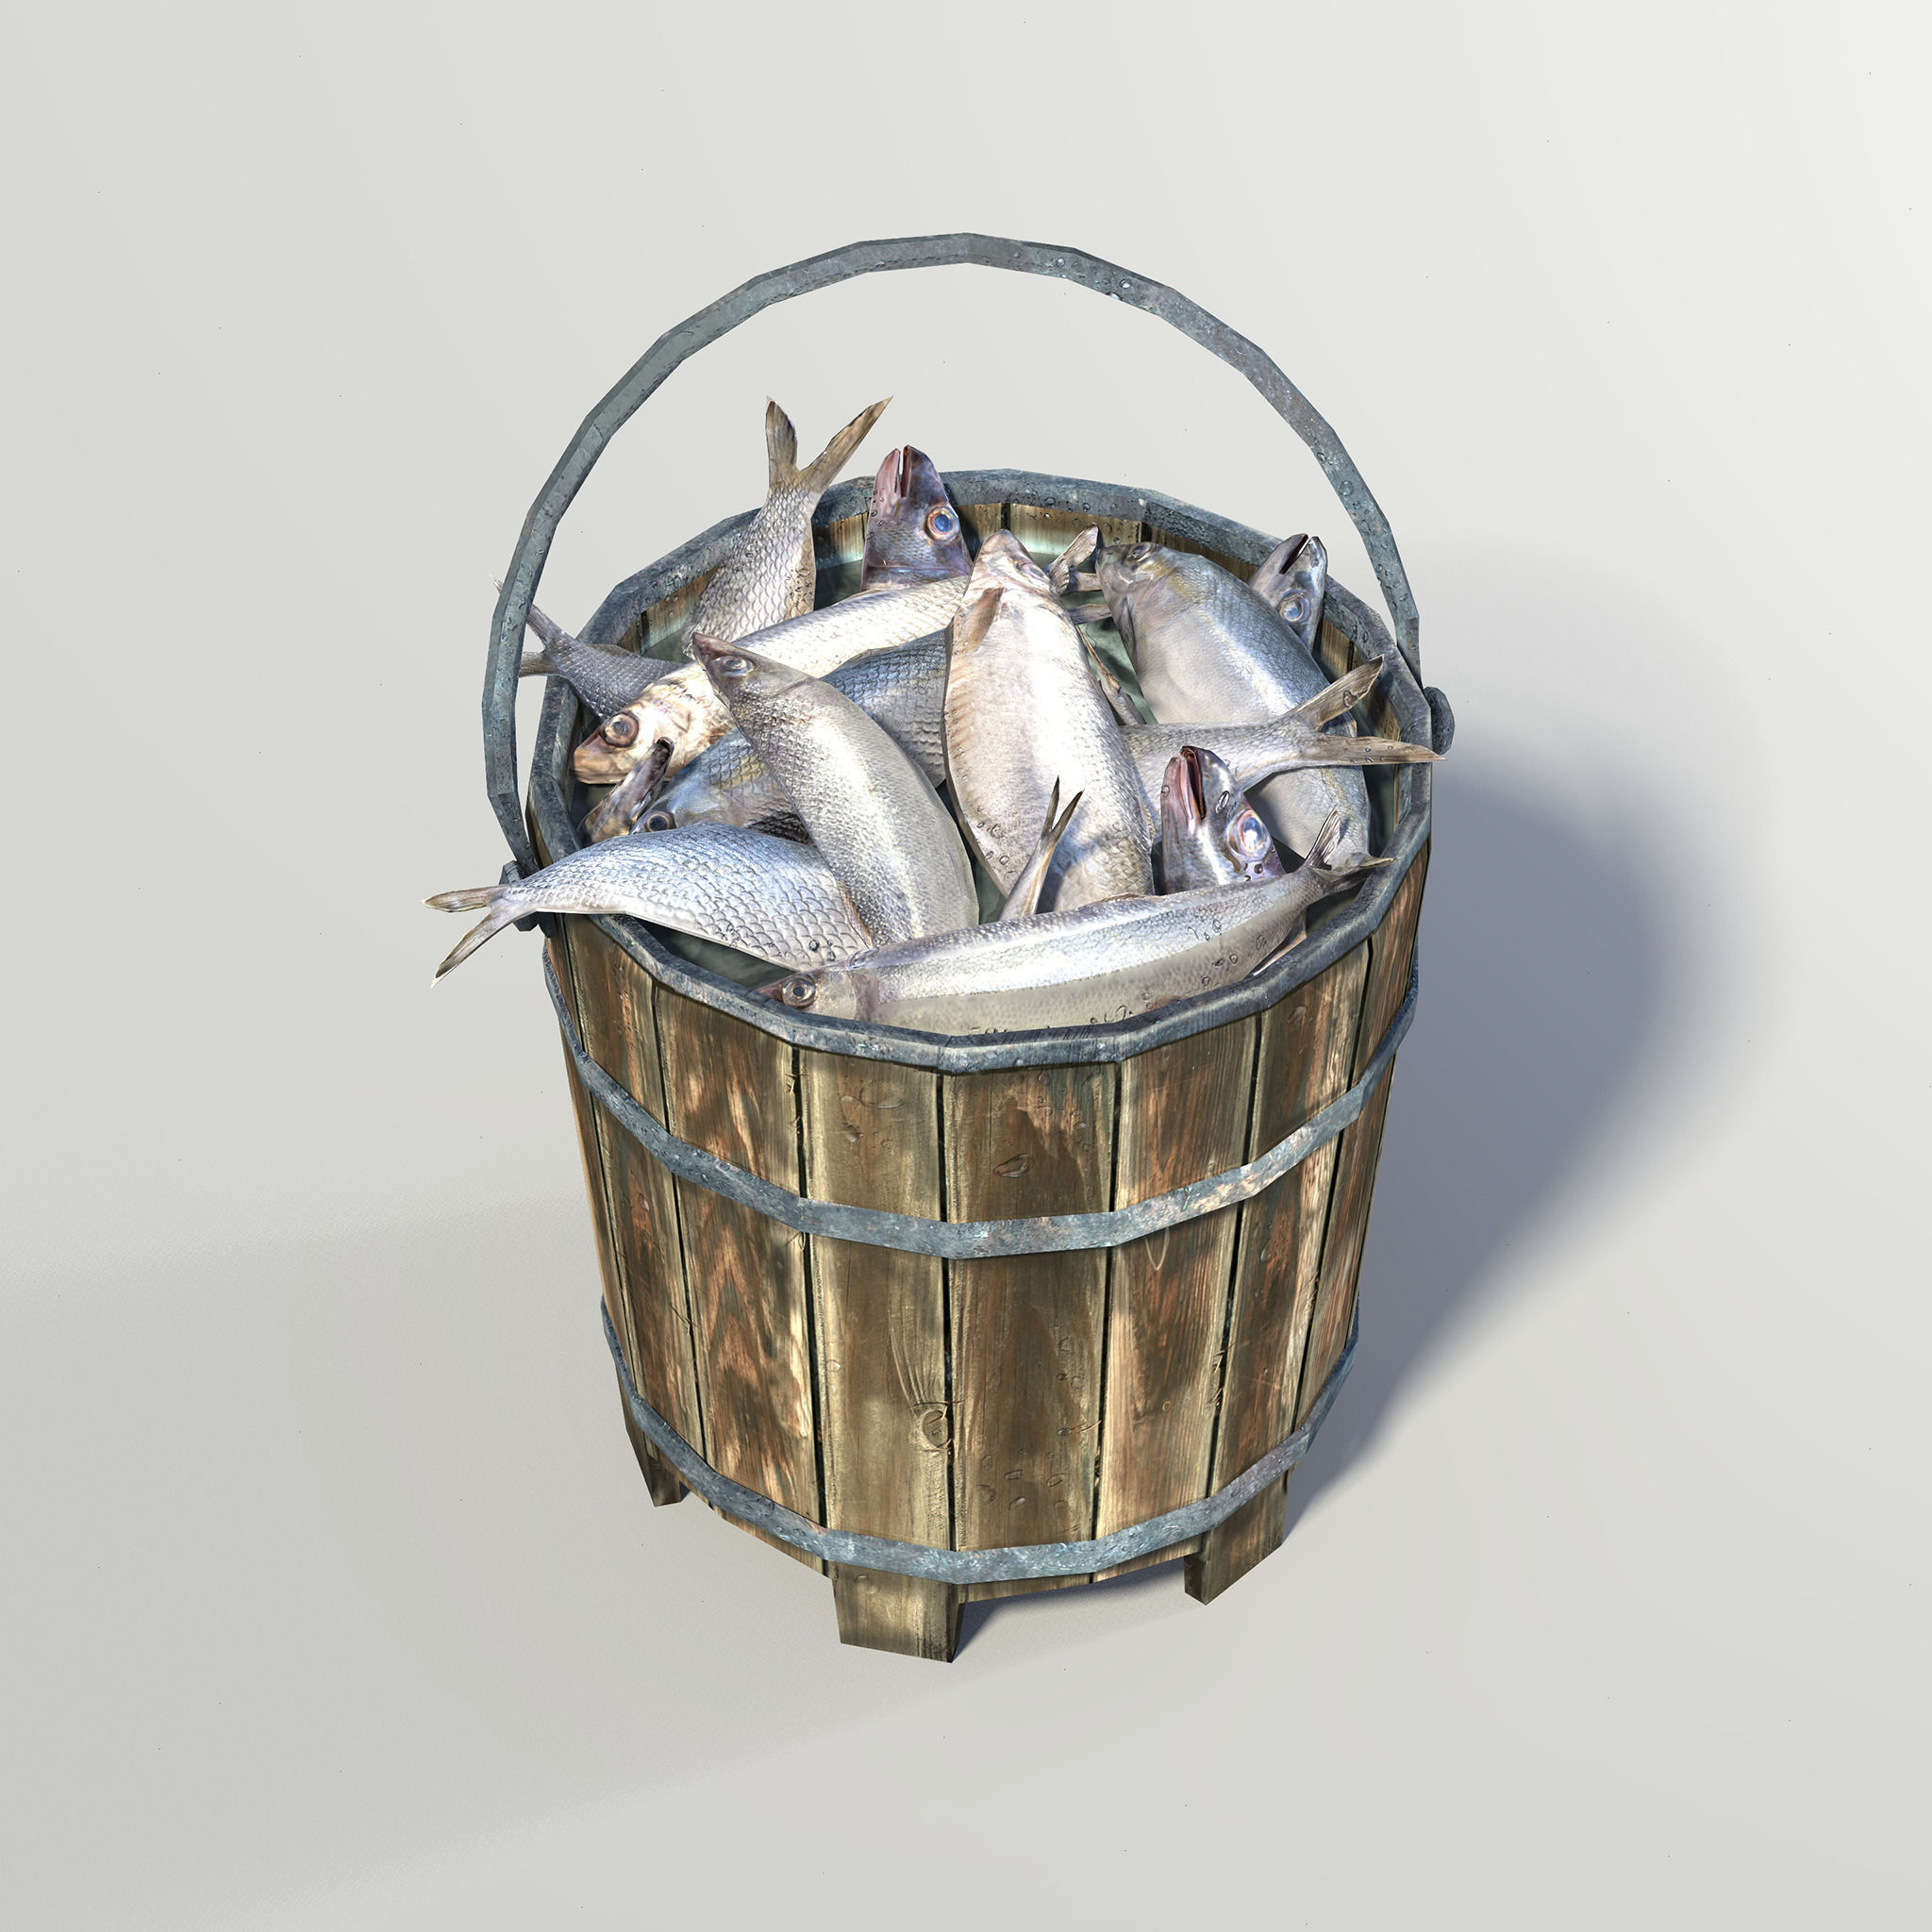 Bucket fish 3d model game ready obj ma mb mtl for Bucket of fish